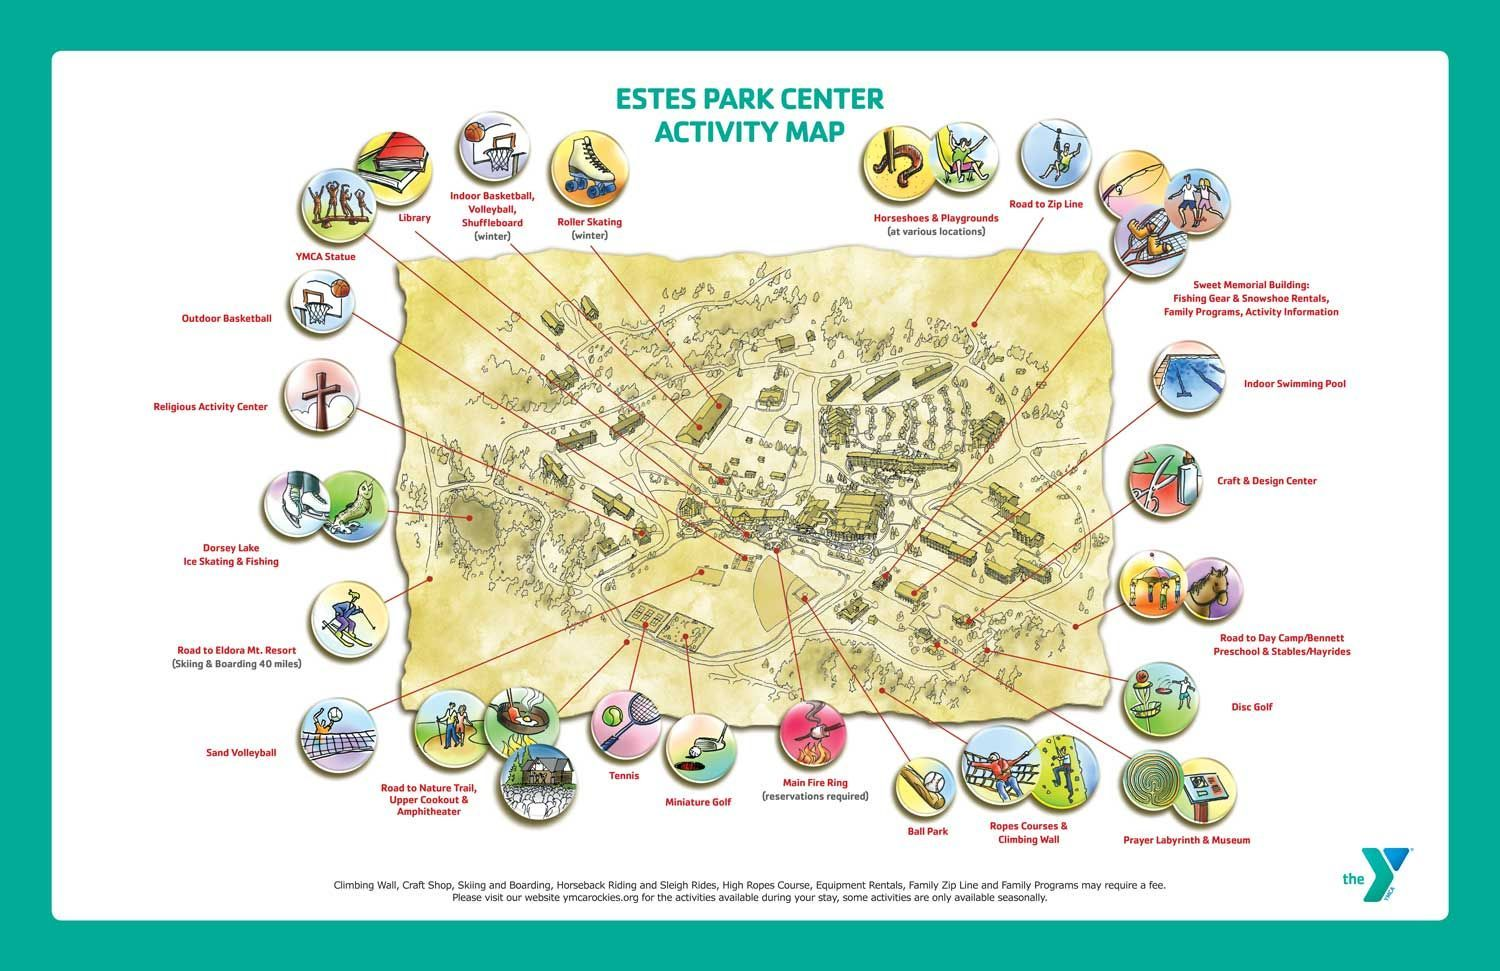 Activities - YMCA of the Rockies - Estes Park, CO ... on ymca snow mountain ranch map, ymca driving park, shadow of us and canada map, ymca estes park co, ymca pool number, ymca resort colorado, montana rockies map, ymca atlanta map, ymca rockies dorms, ymca in the rockies, ymca of the ozarks map, ymca open house event,